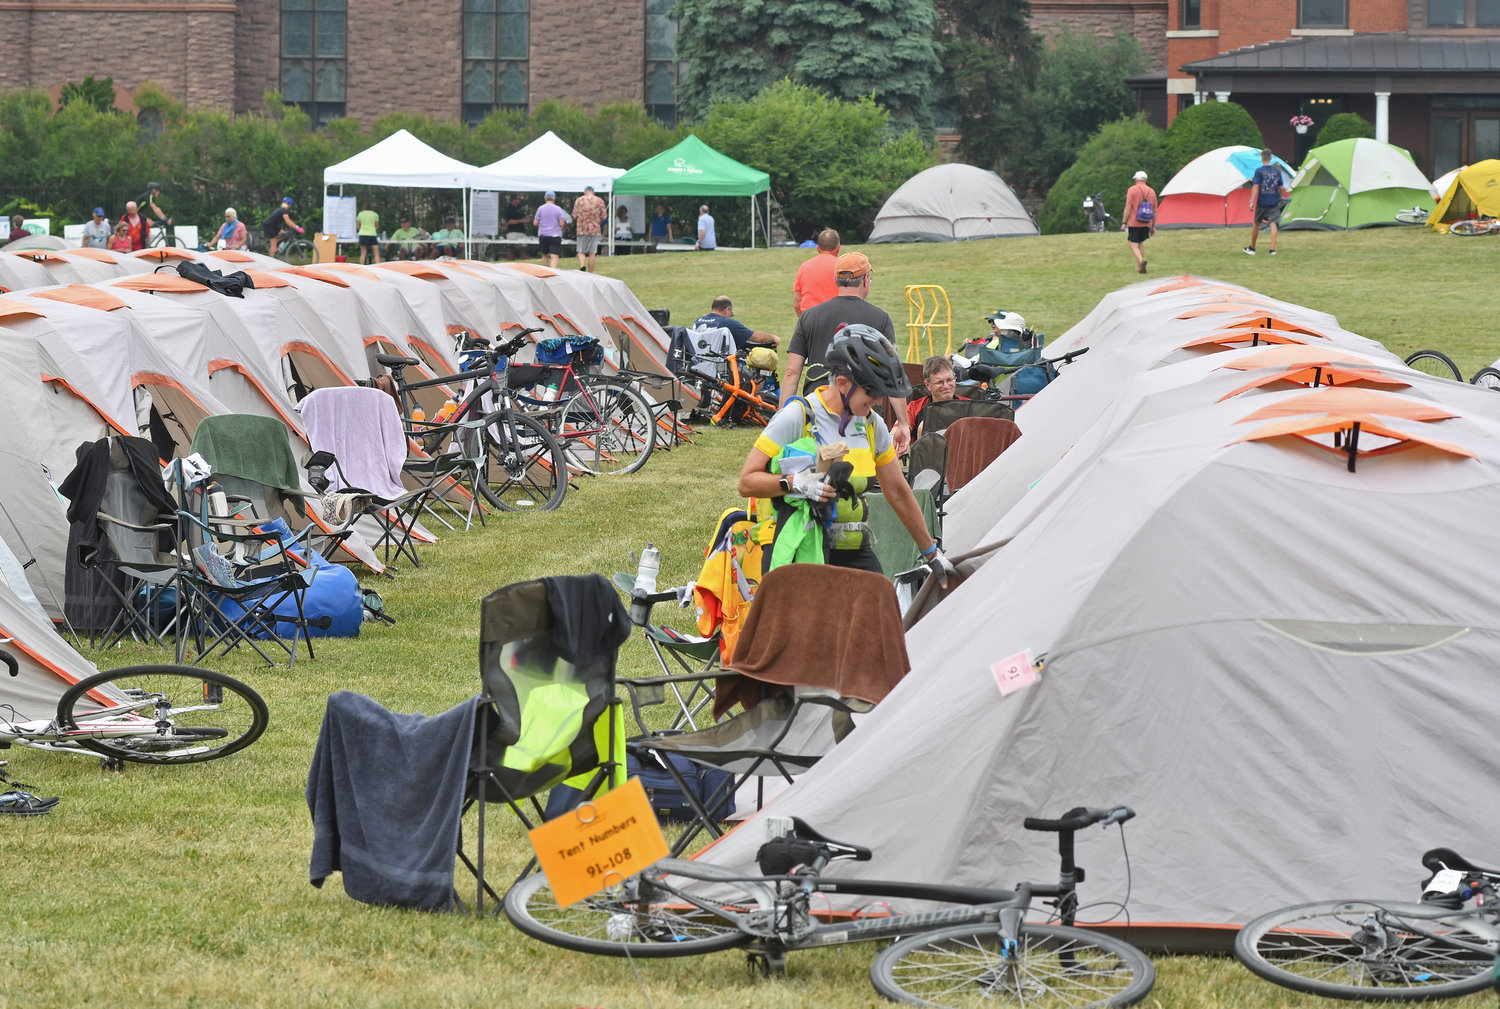 TENT CITY — In the foreground, cyclists unpack their supplies and settle in for a night on the Fort Stanwix lawn. At the check-in tents at back, near St. Peter's, cyclists could learn information on area restaurants and entertainment options. A shuttle bus service was also available for the tourists.